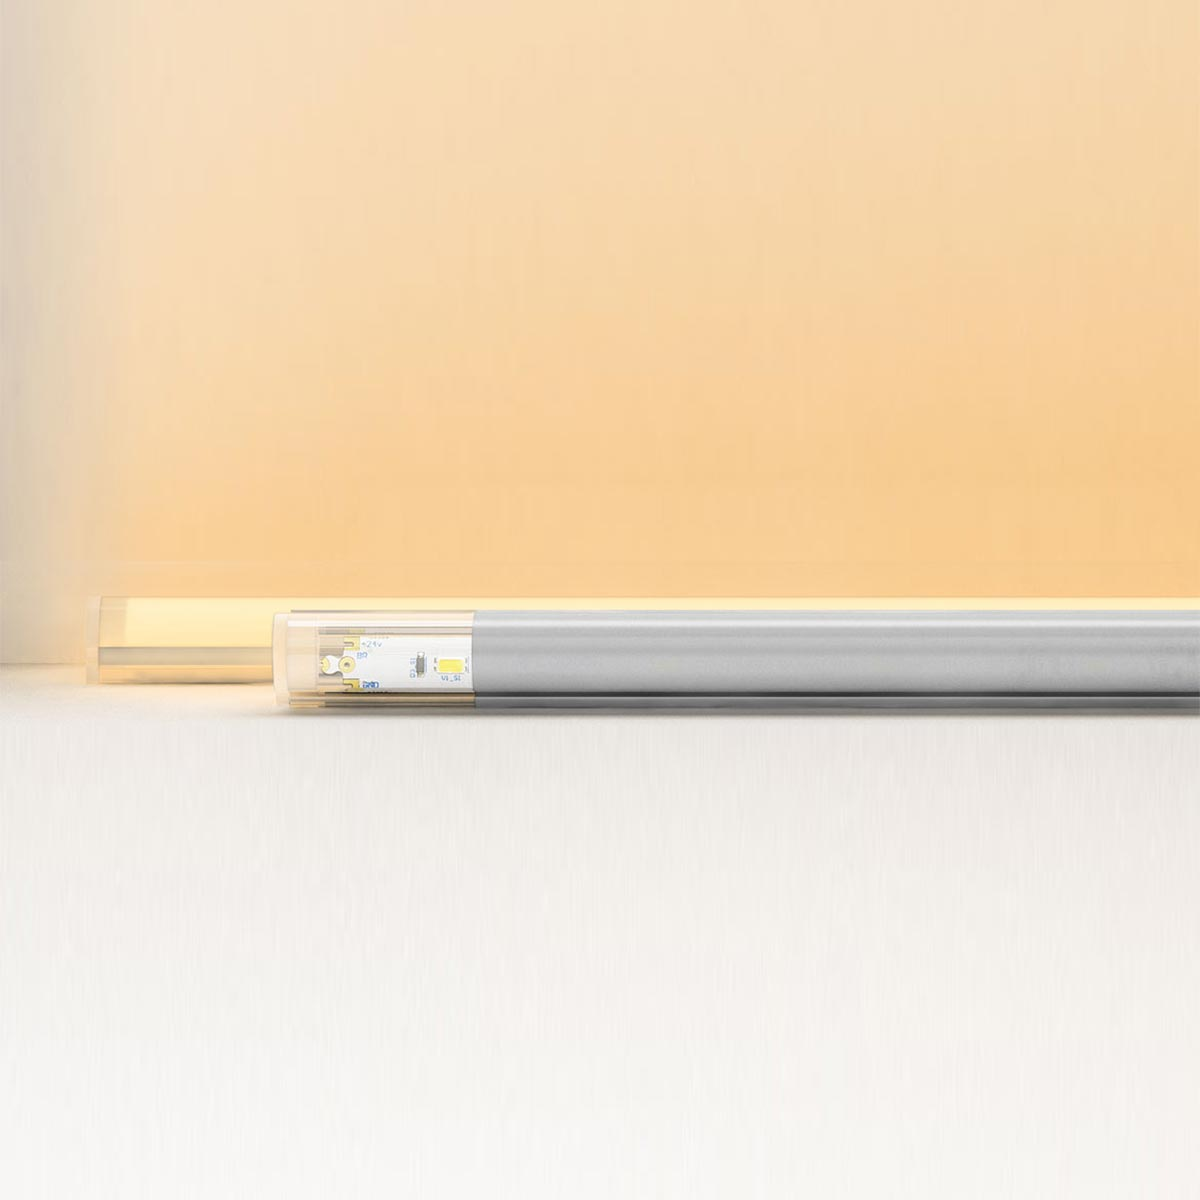 Primo - LED Strip for Concealed Cove Lighting Applications 10W